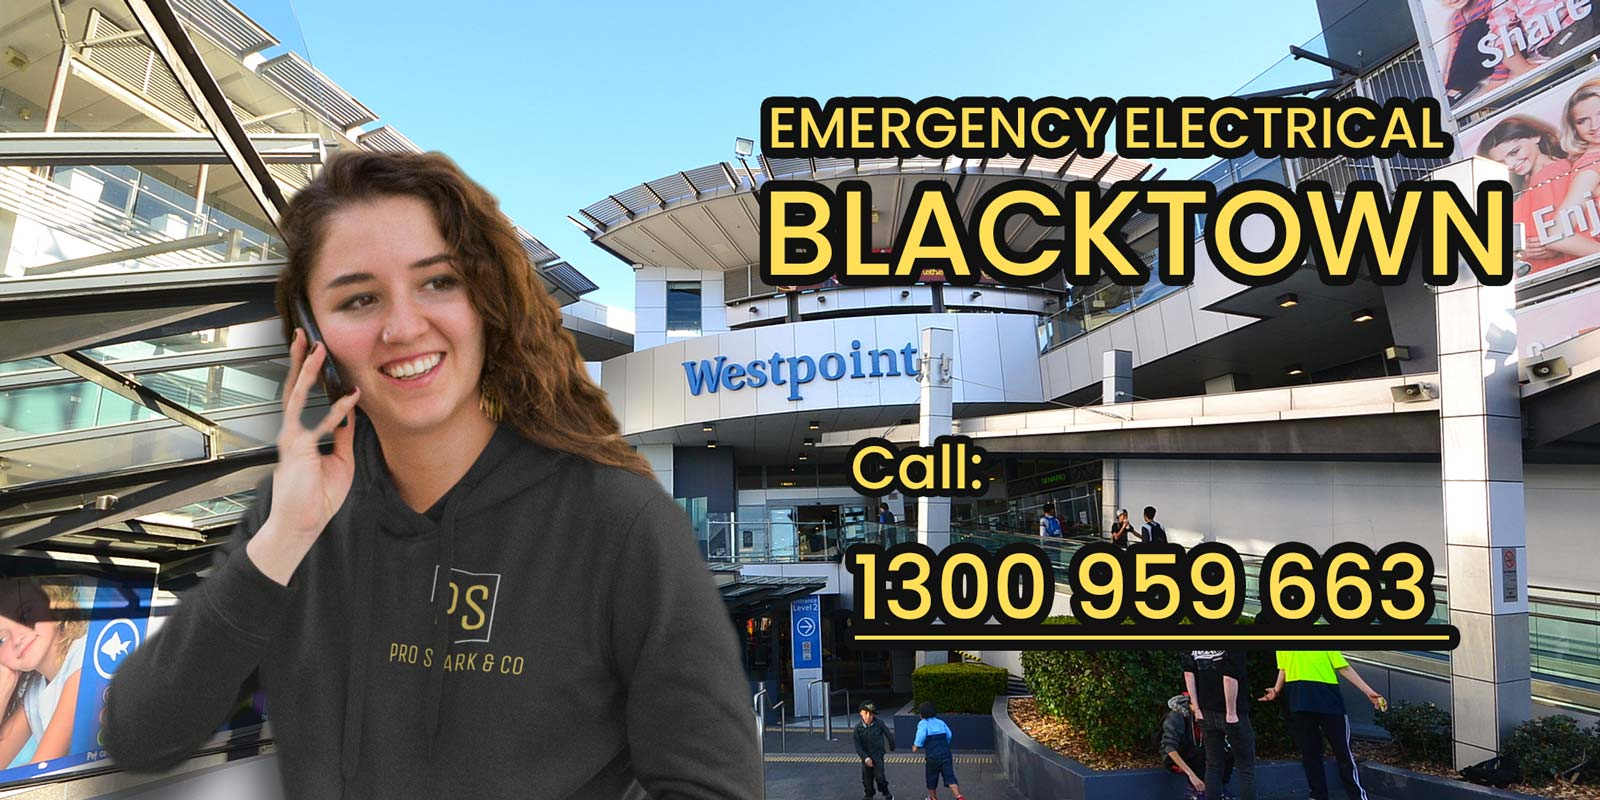 Emergency Electrician Blacktown NSW | 24/7 Response